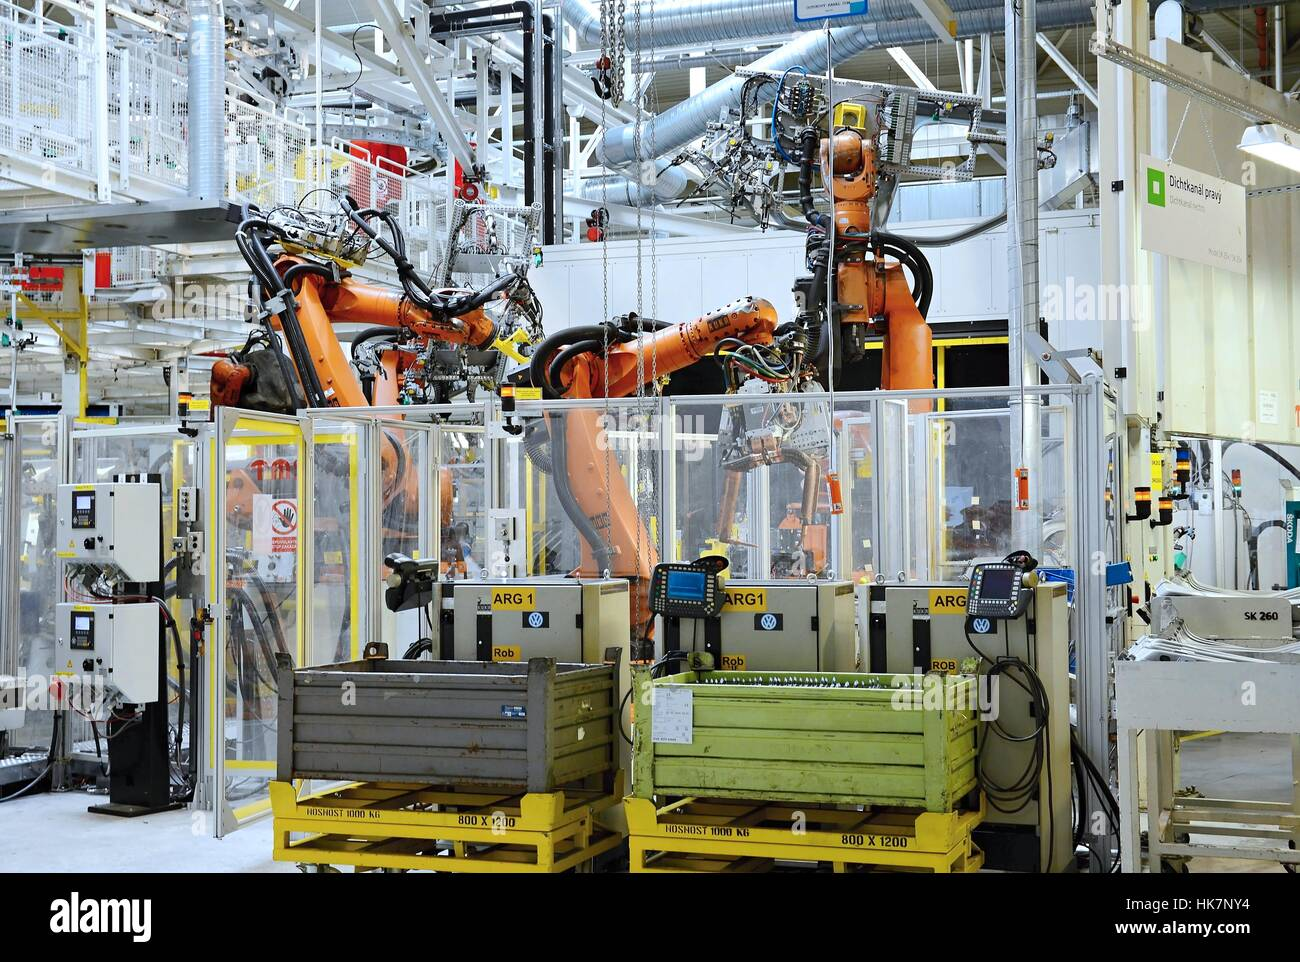 Automatic robot in car factory - Stock Image